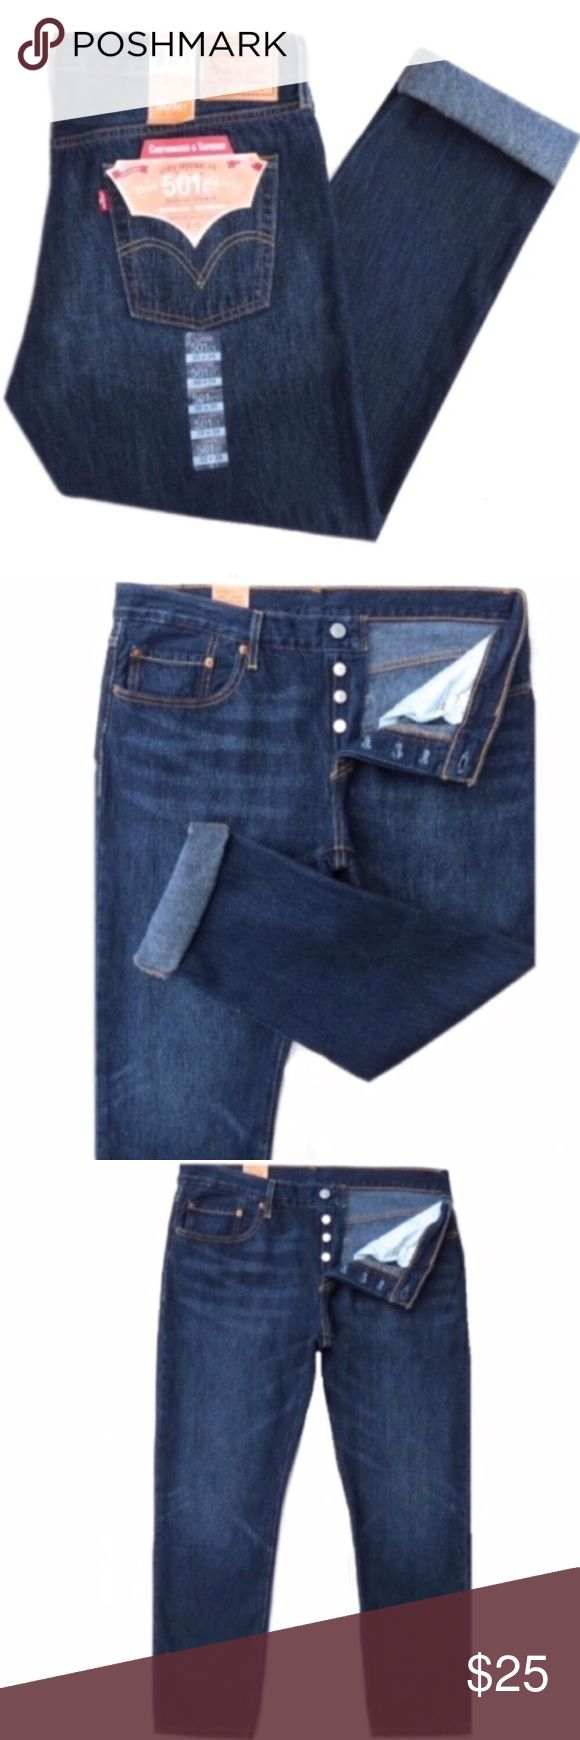 """NWT Levi's 501 CT Women's Button Fly Jeans Brand new with tags Levi's 501 CT women's button fly jeans. Dark blue wash. Button fly. Cotton. Size 31 by 32. They have a 10"""" rise and 29"""" inseam. Very nice! Levi's Jeans"""